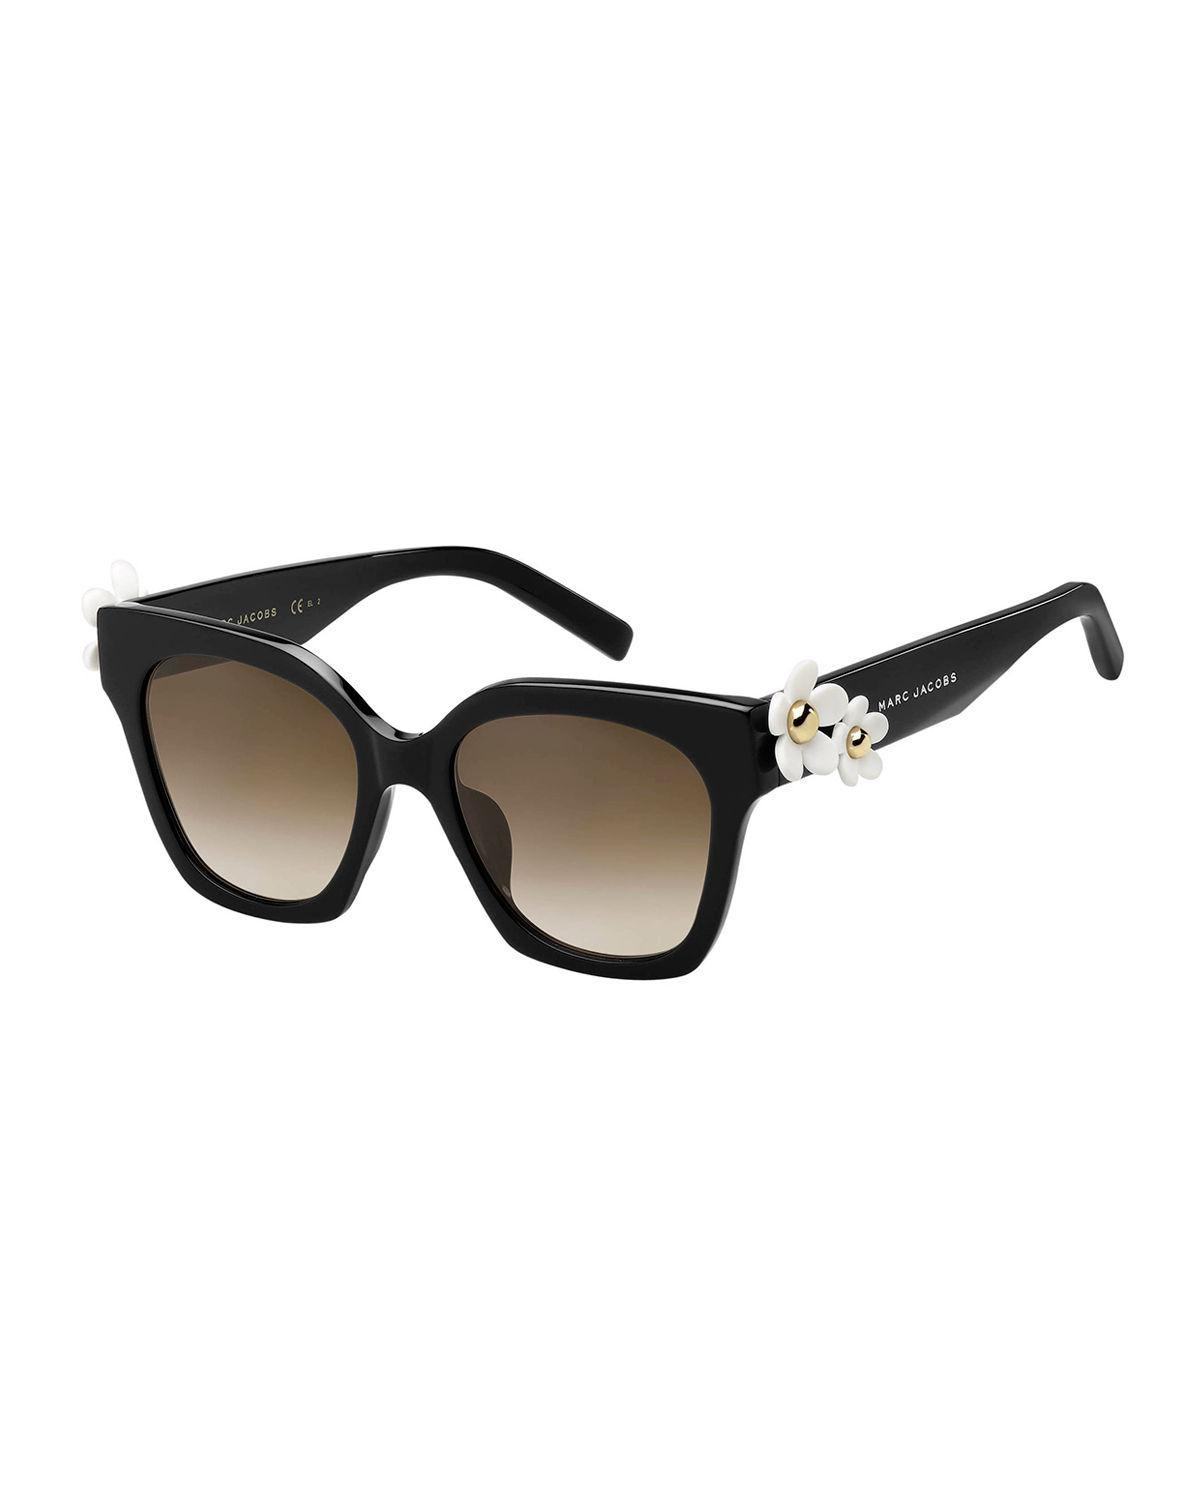 1e1298f34f94 Marc Jacobs - Black Square Acetate Daisy Sunglasses - Lyst. View fullscreen